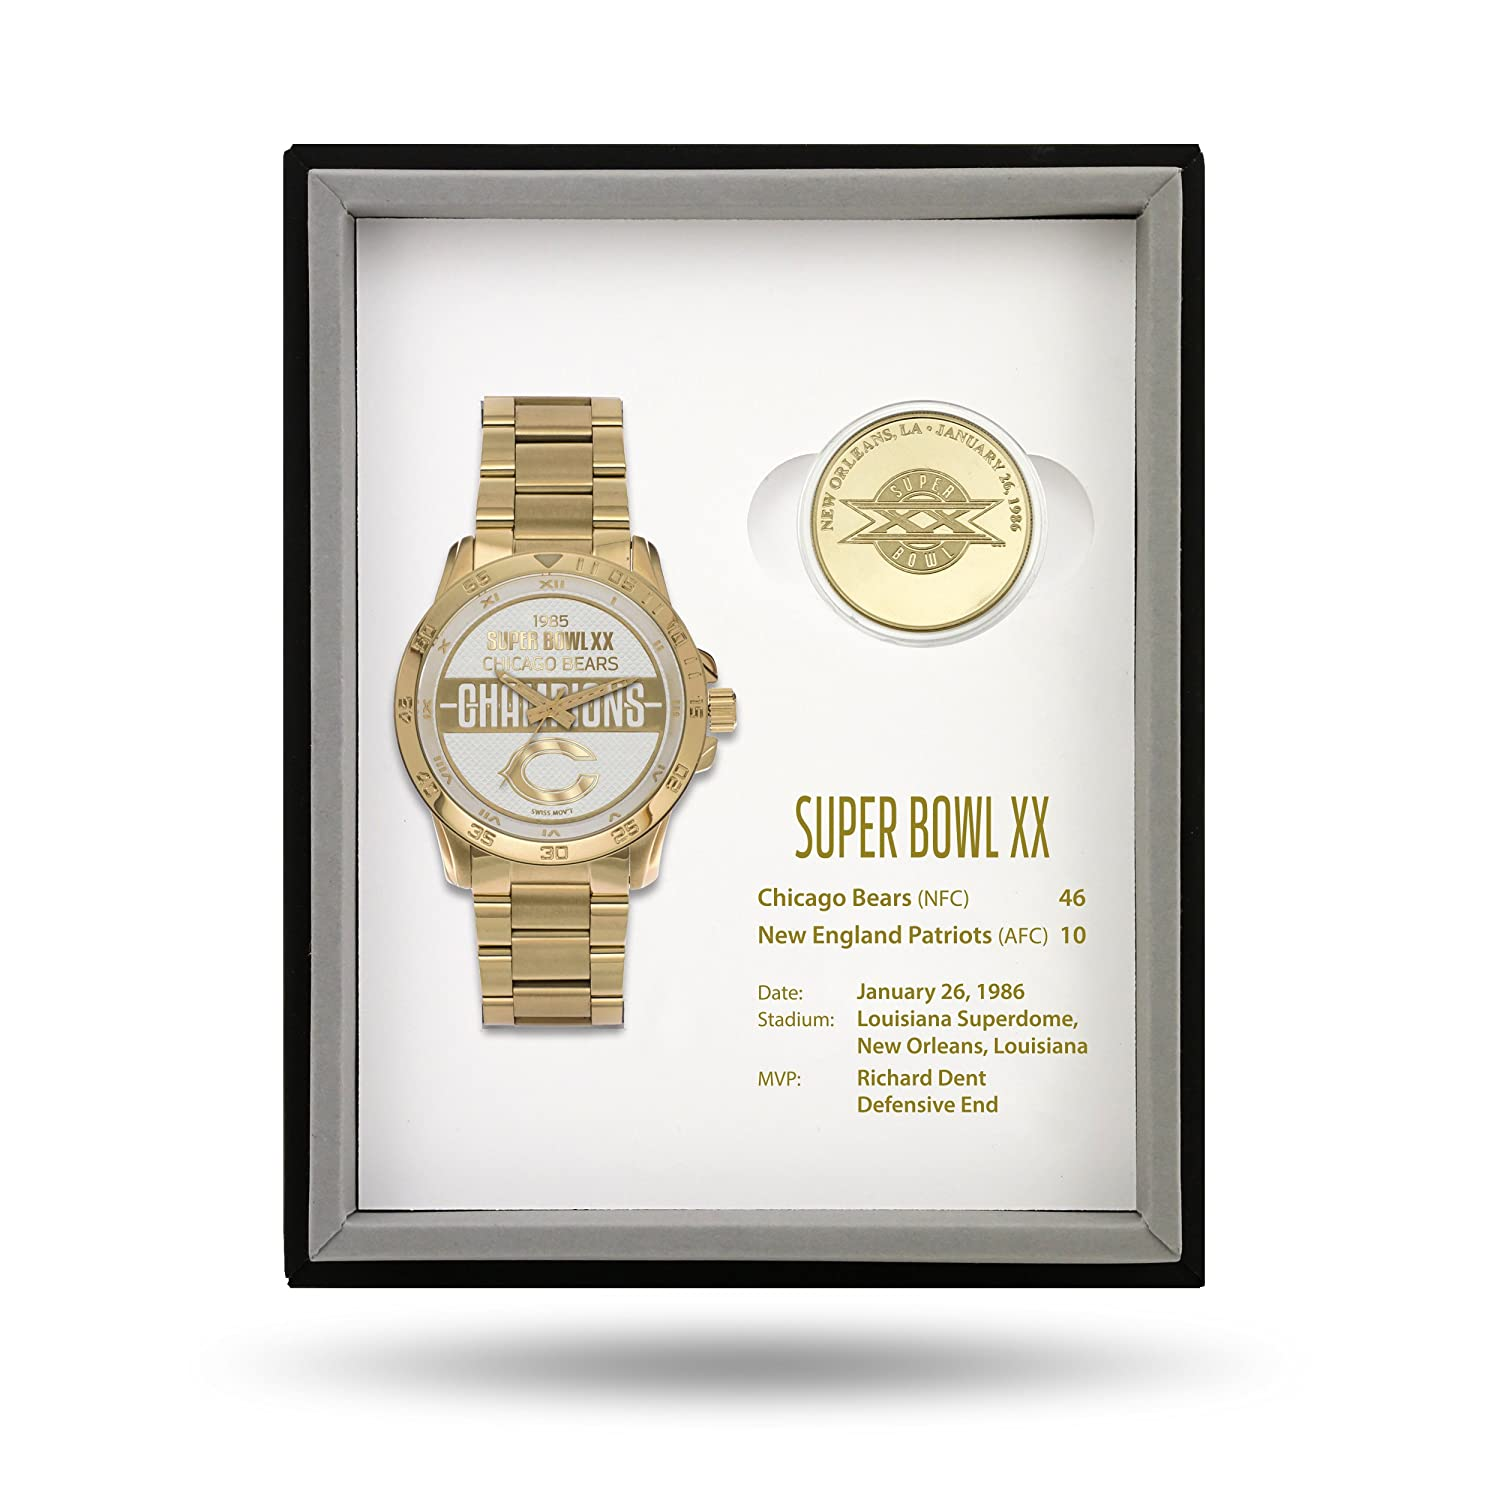 NFL Super Bowl Watch and Coin Gift Sets